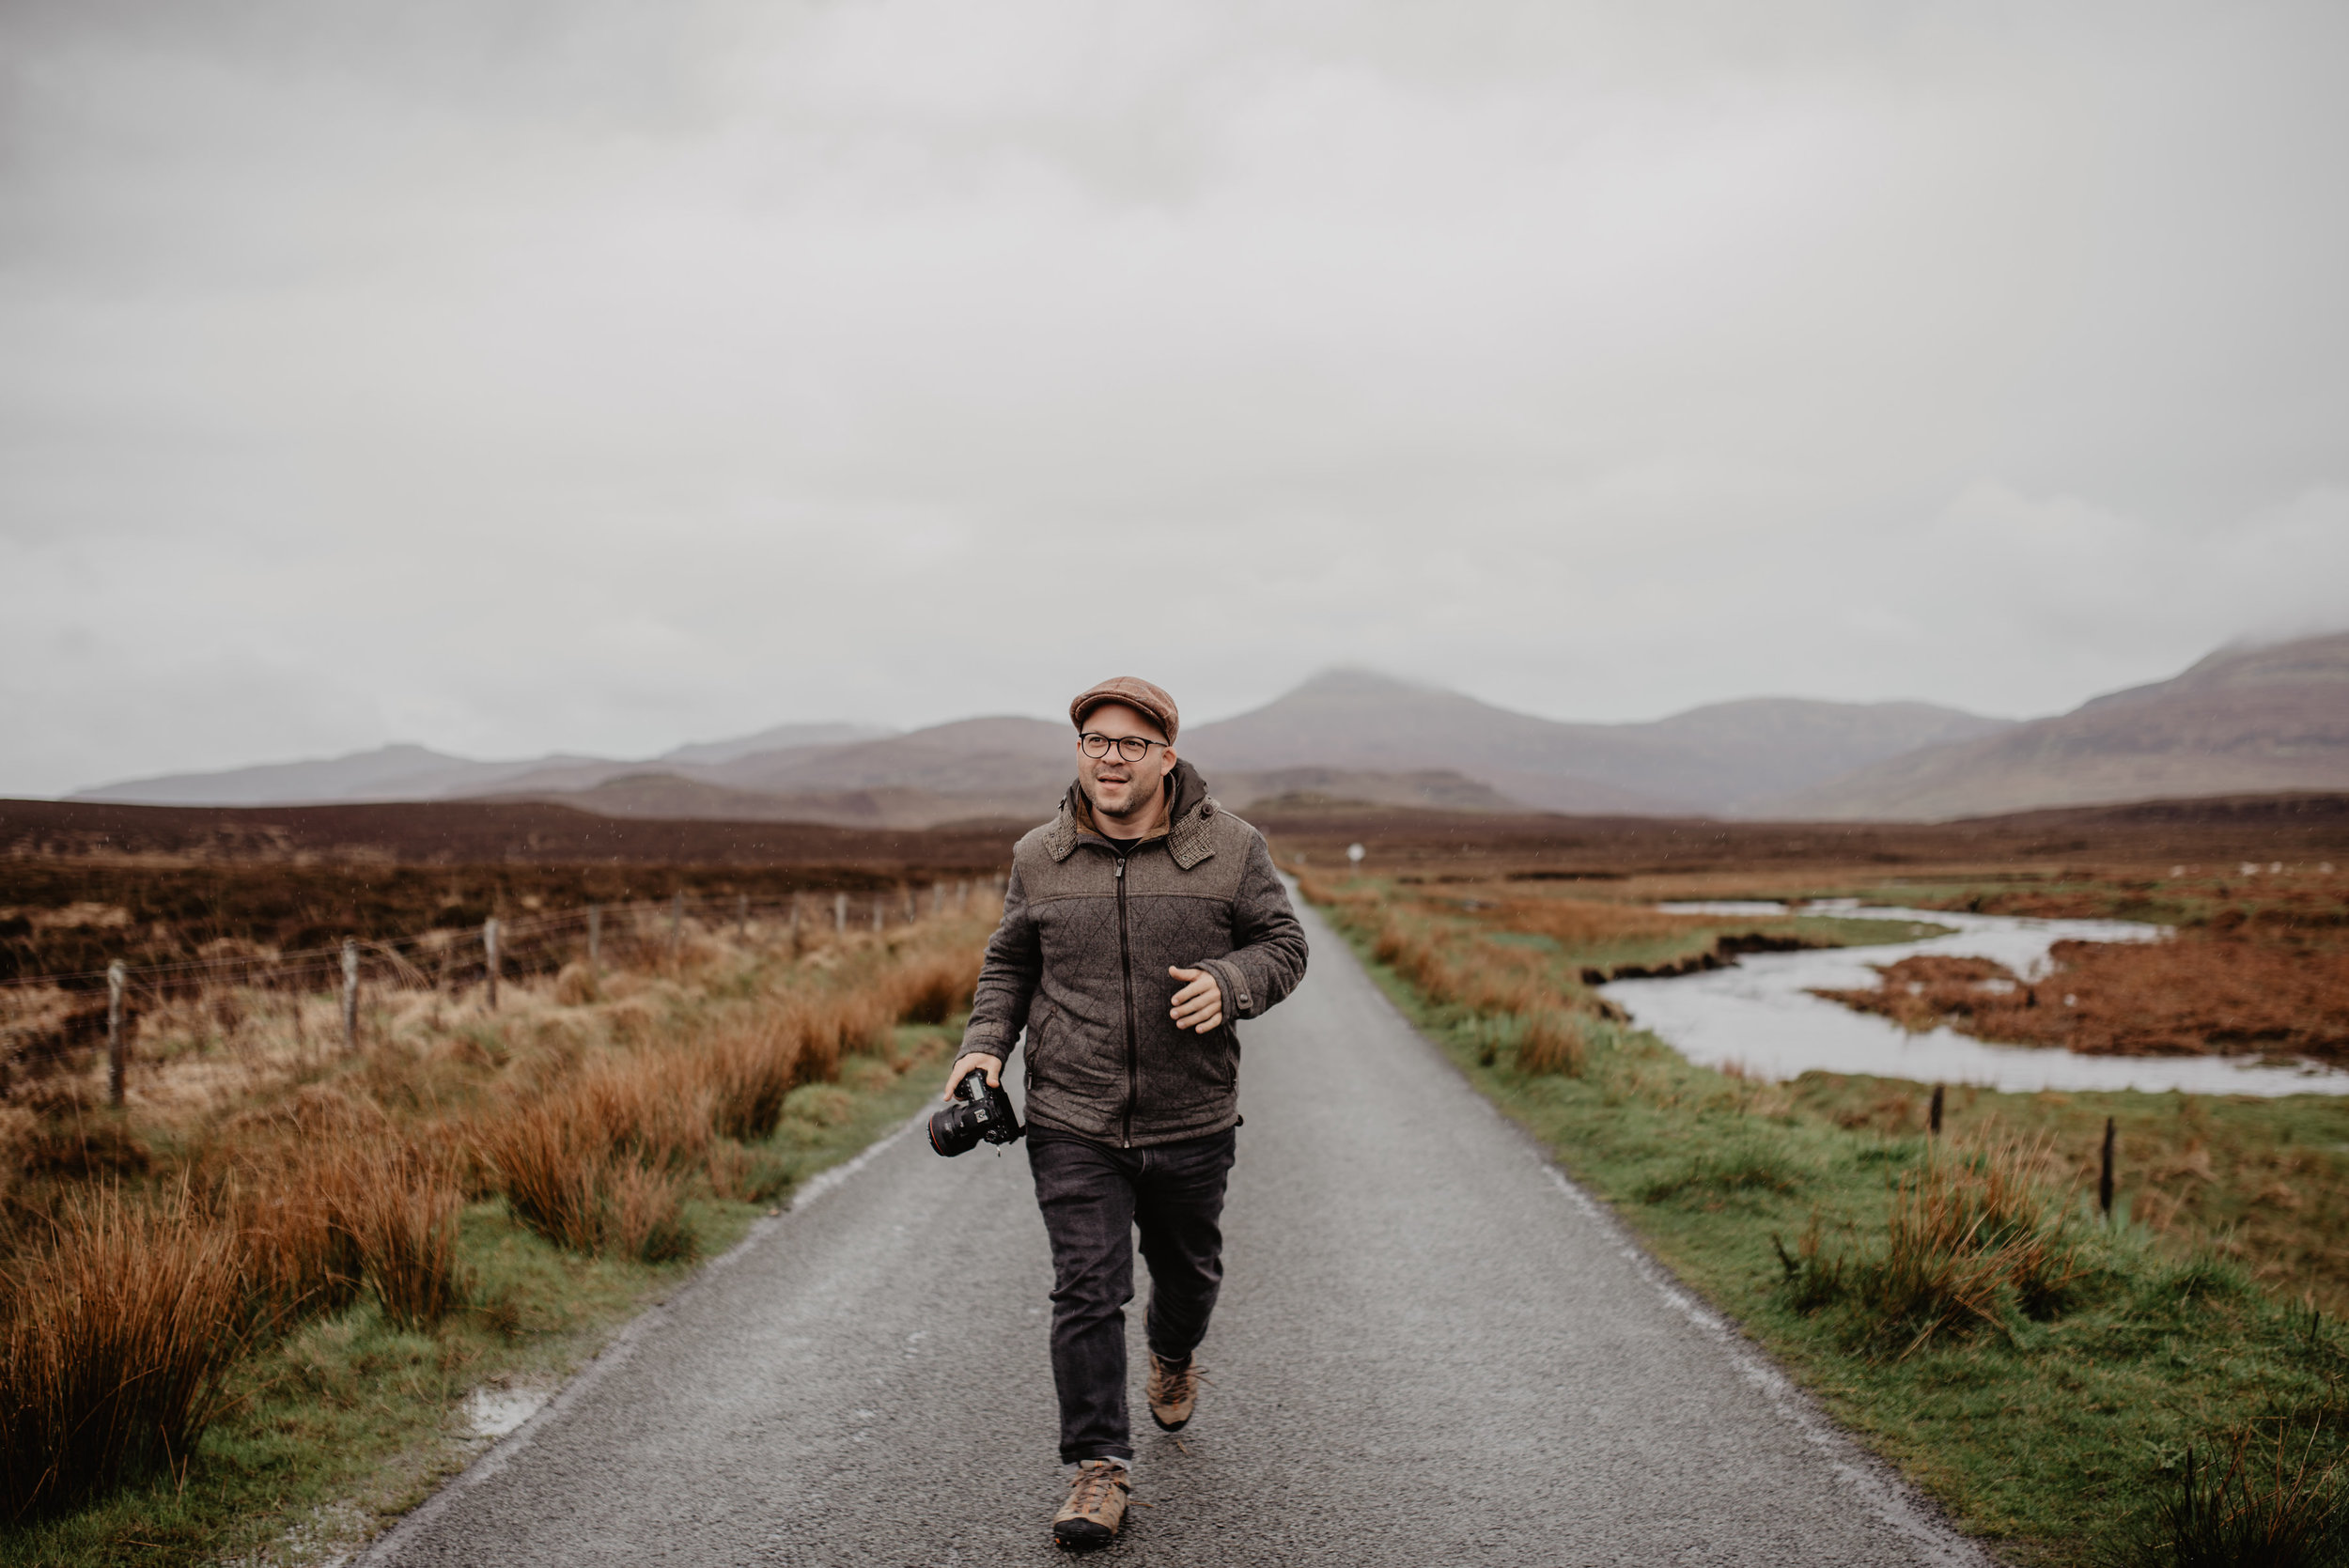 Lapela-photography-Isle-of-Skye-elopement-BTS-13.jpg